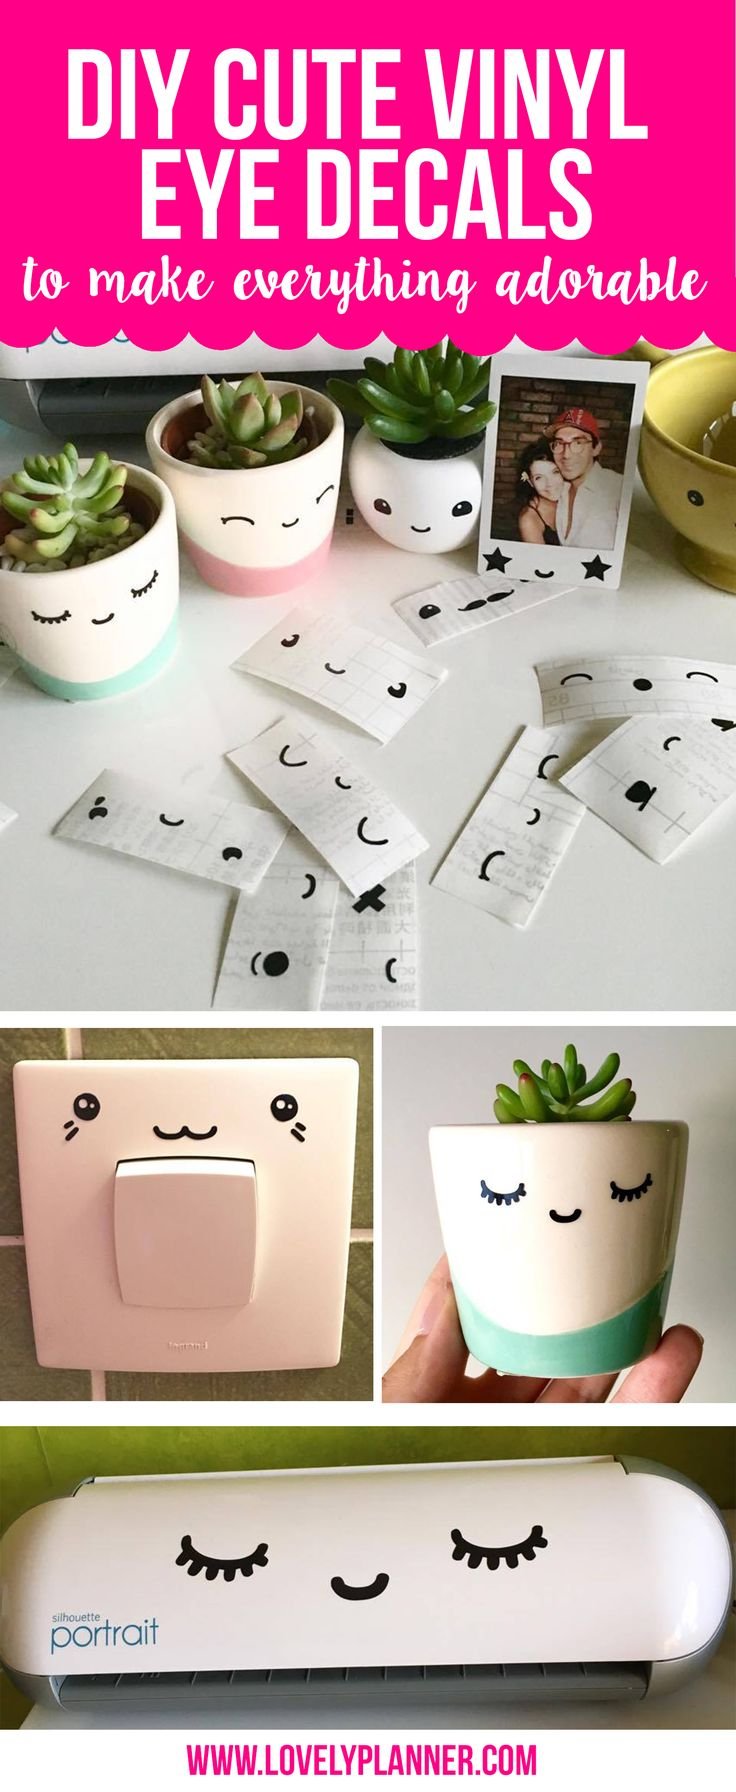 DIY cute eyes decals to make everything adorable